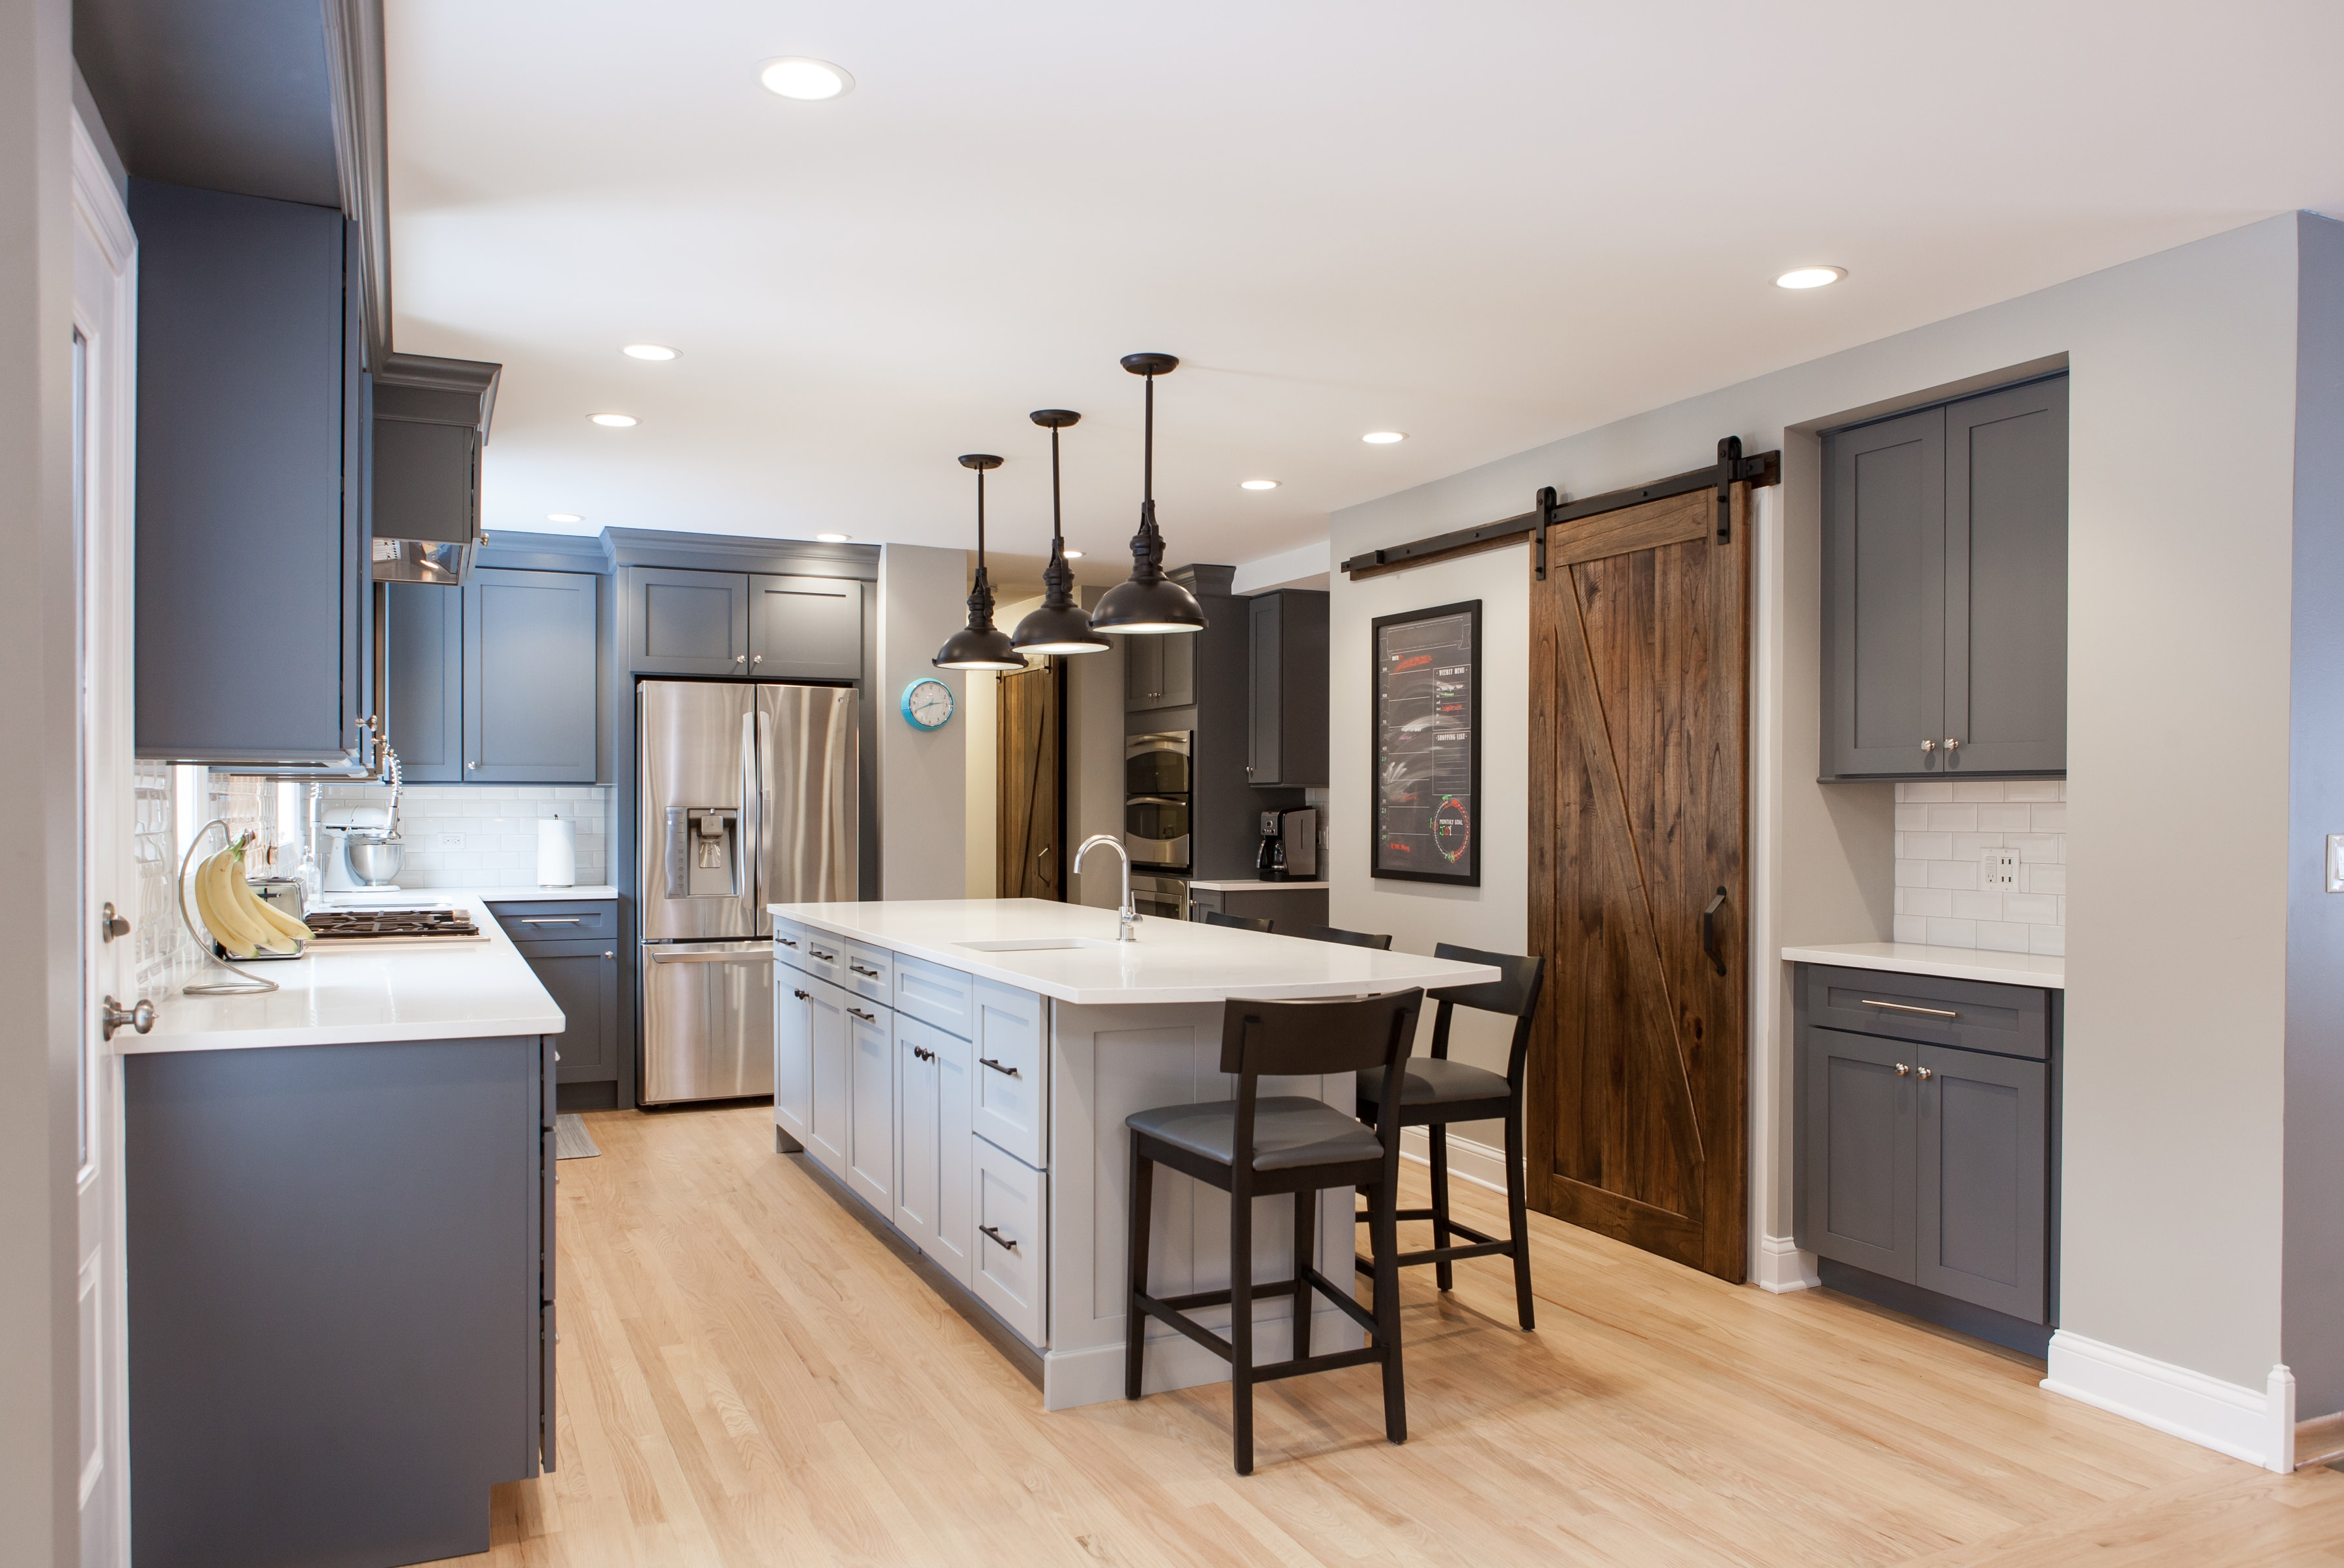 How much does a kitchen remodel cost in chicago